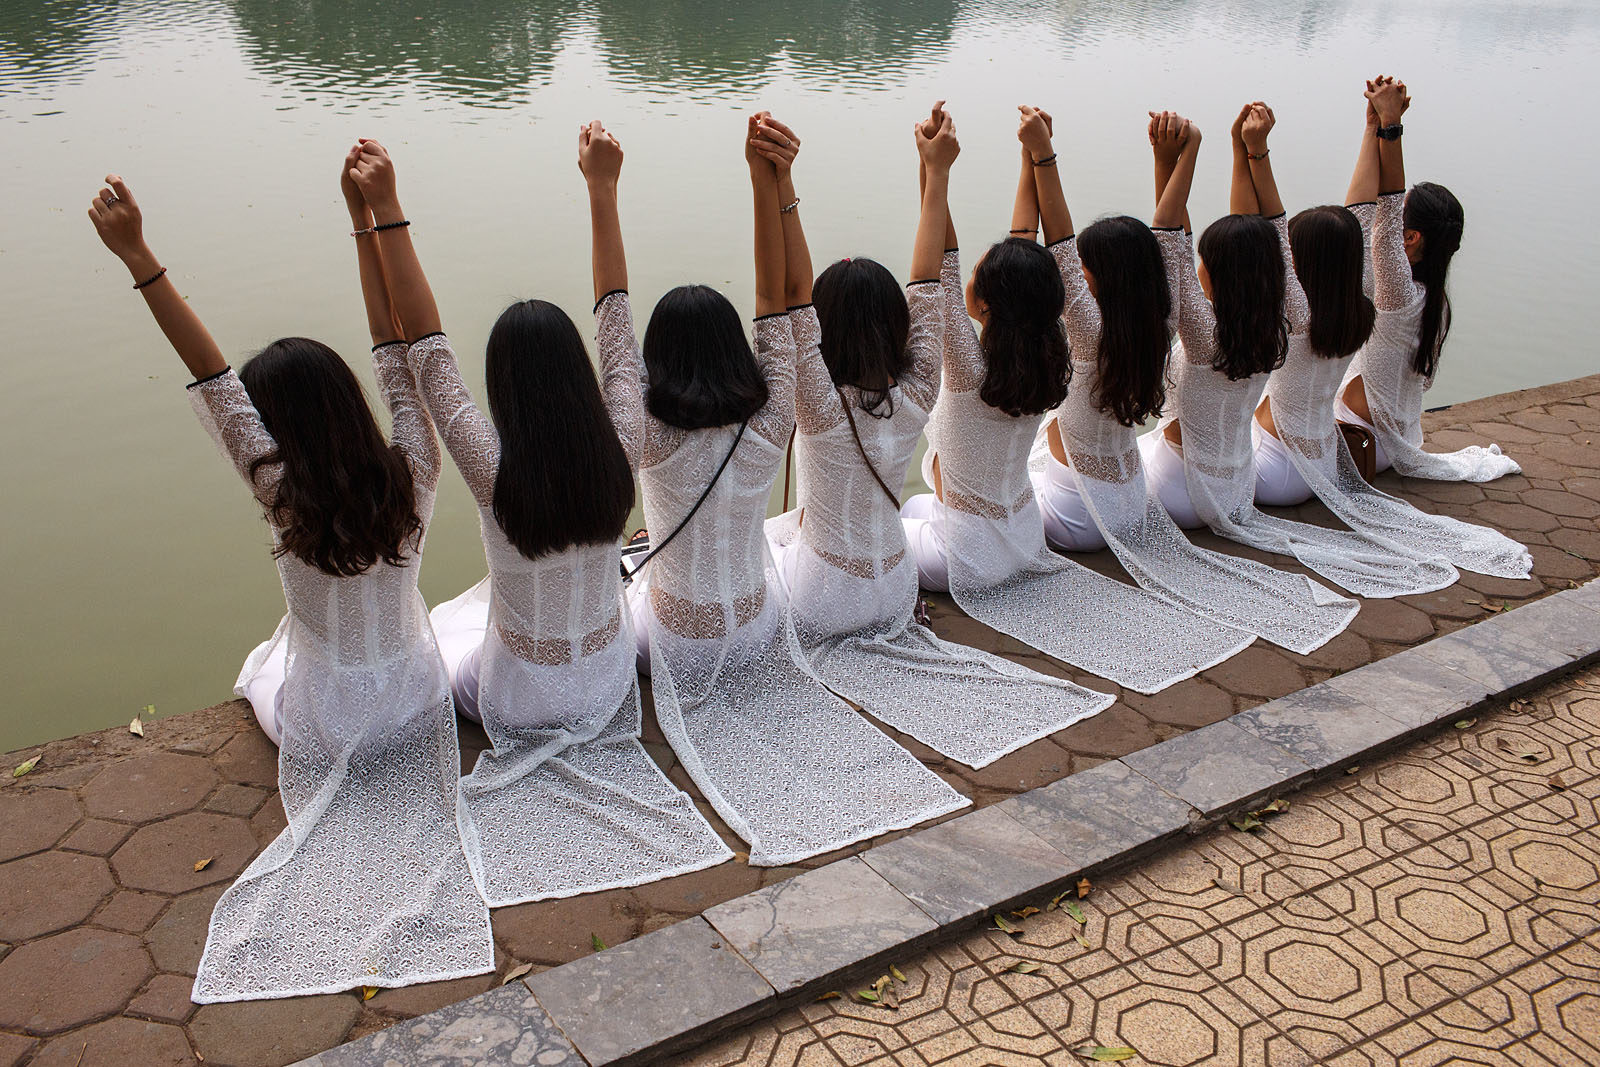 vietnam_hanoi_city_Hoan_Kiem_Lake_women_girls_students_ao_dai_water_travel_photography-1600x1067.jpg